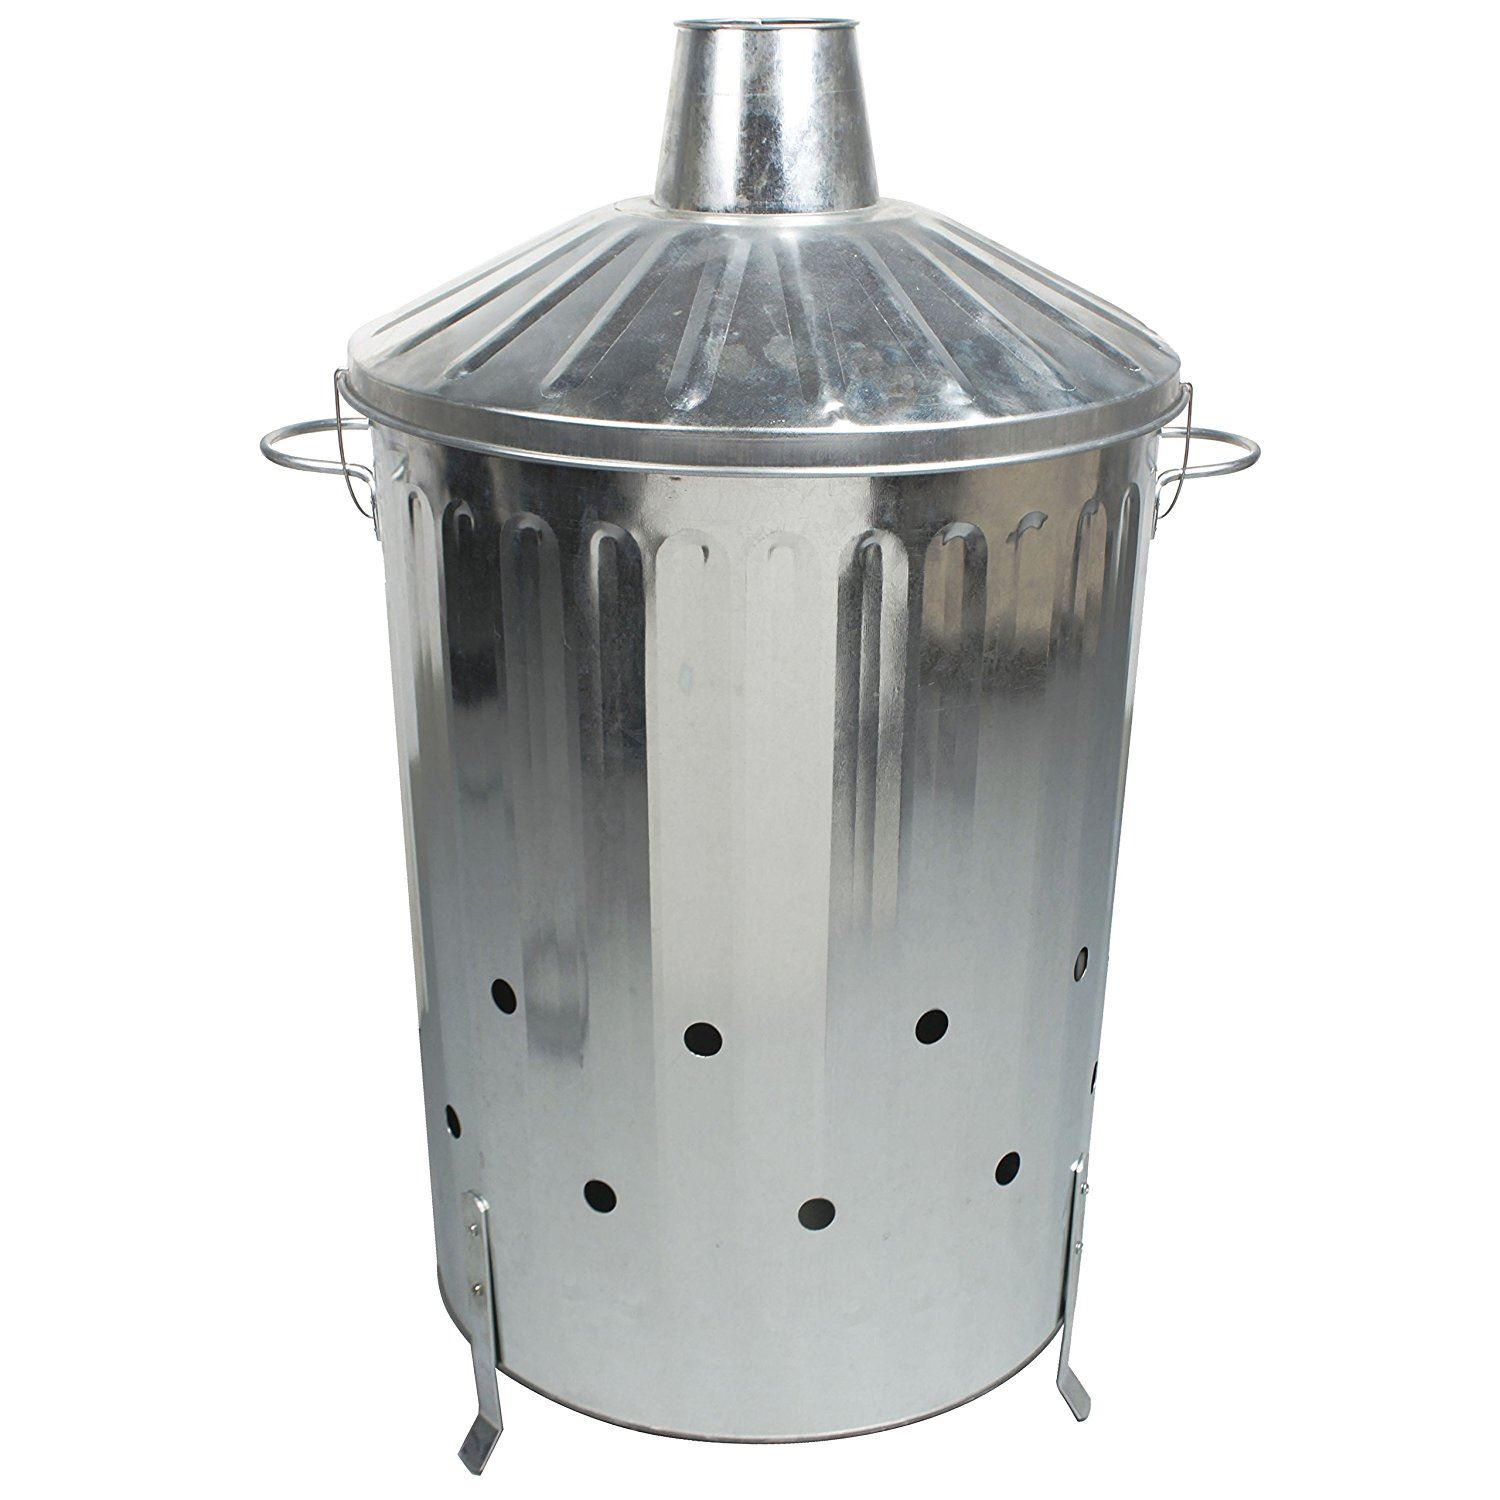 Outstanding Small Medium Large Metal Garden Incinerator Fire Burning Bin With  With Marvelous Smallmediumlargemetalgardenincineratorfireburning With Beautiful Garden Shed Roof Repairs Also Penshurst Gardens Edgware In Addition Garden Flower And Crabtree And Evelyn Gardeners Hand Cream As Well As Power Devil Garden Shredder Additionally Garsons Garden Centre Fareham From Ebaycouk With   Marvelous Small Medium Large Metal Garden Incinerator Fire Burning Bin With  With Beautiful Smallmediumlargemetalgardenincineratorfireburning And Outstanding Garden Shed Roof Repairs Also Penshurst Gardens Edgware In Addition Garden Flower From Ebaycouk